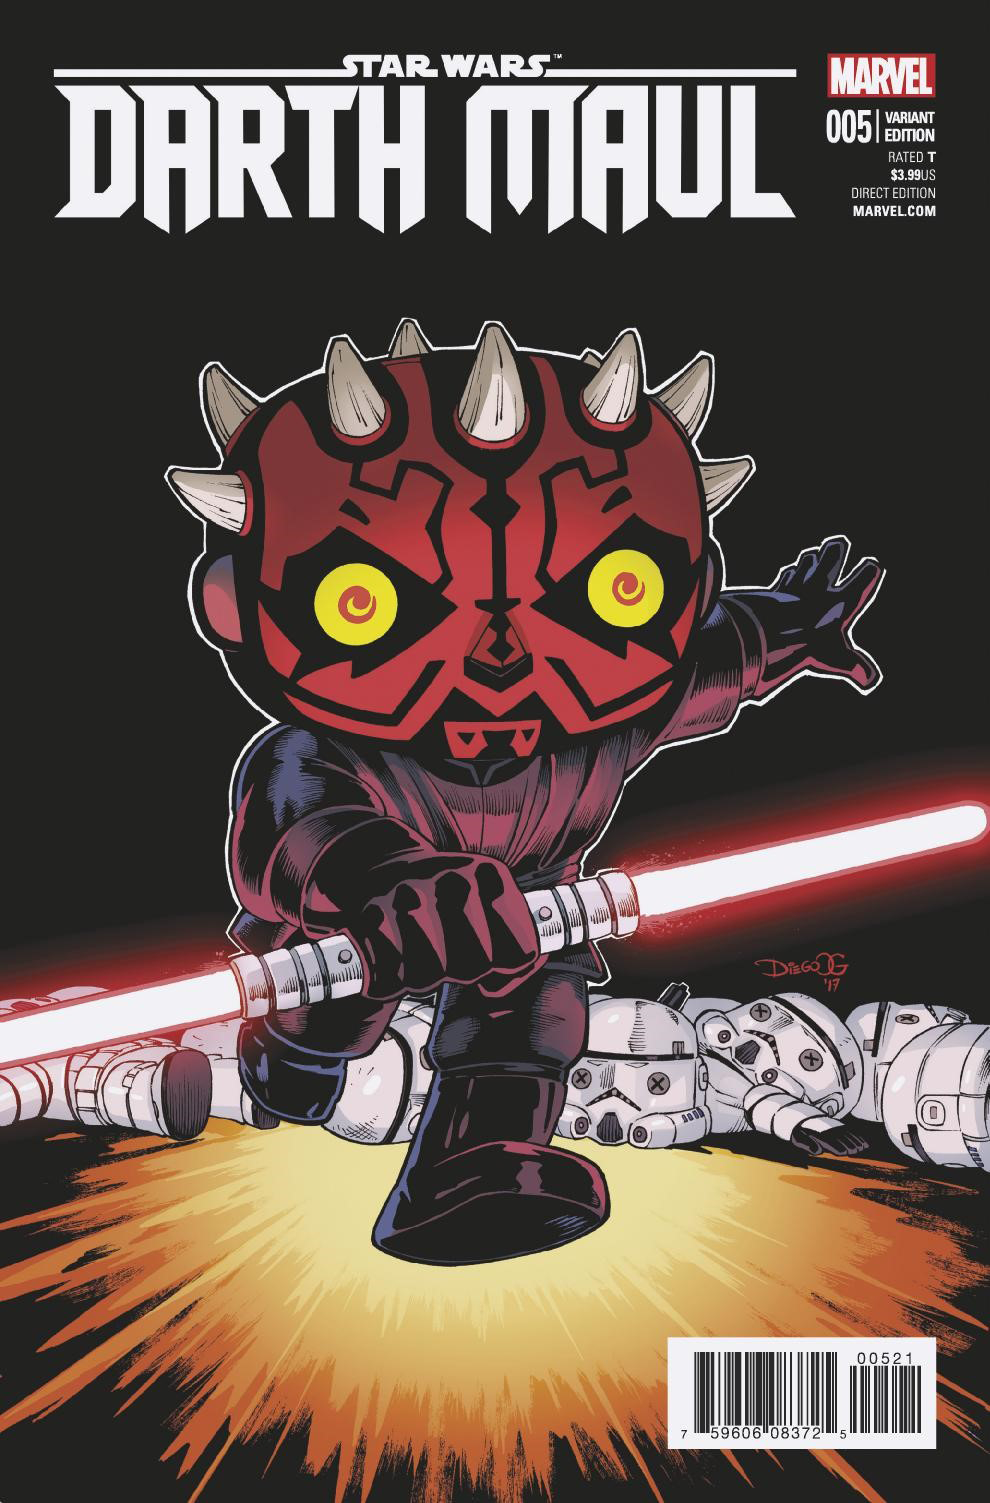 STAR WARS DARTH MAUL #5 (OF 5) OLORTEGUI FUNKO VAR